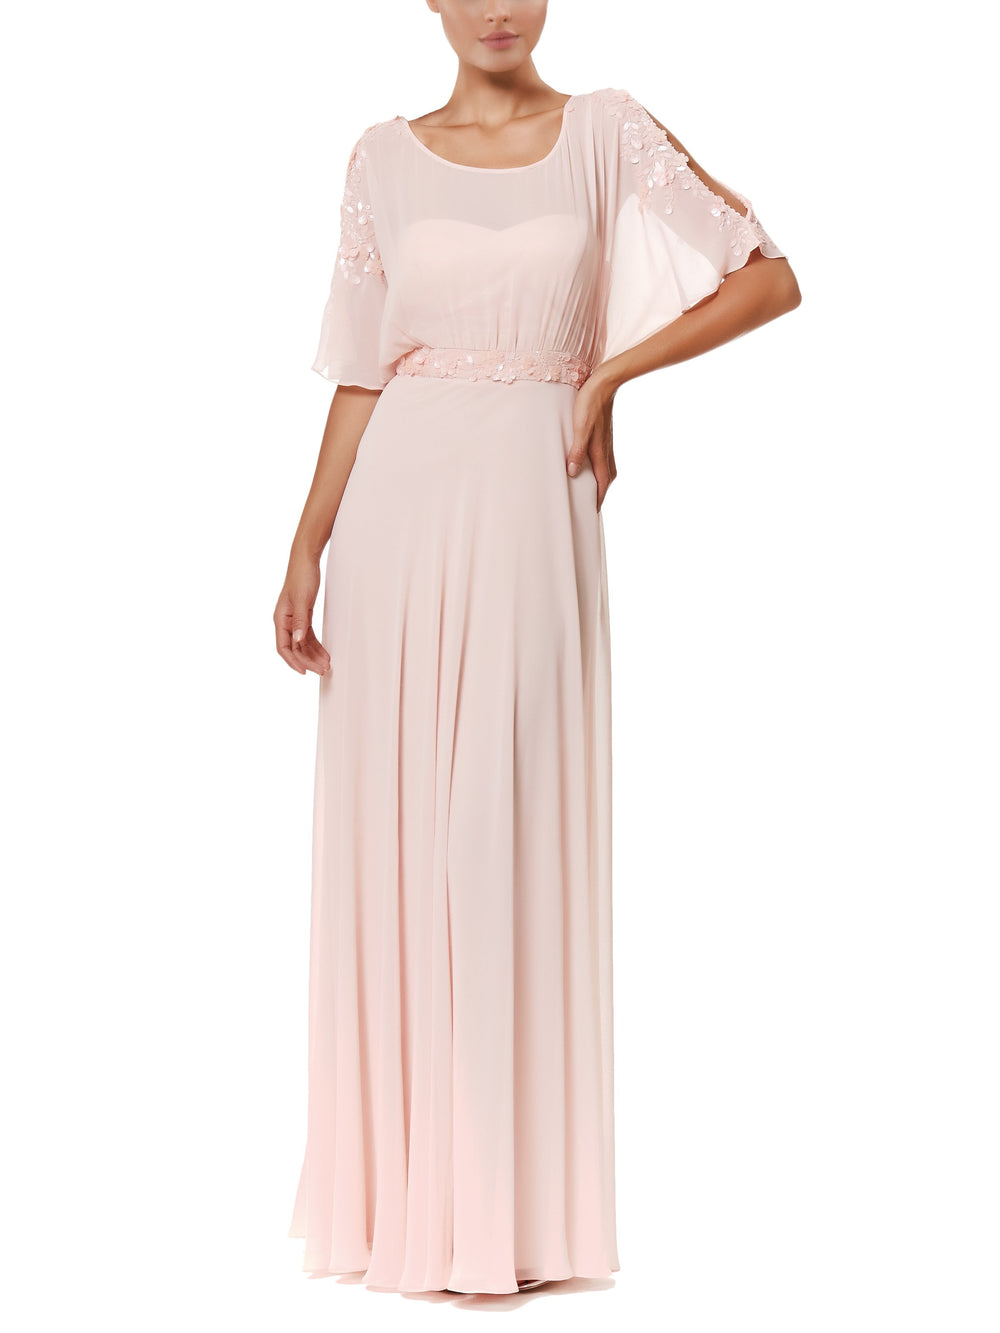 Blush Vittoria Embellished Gown, VITTORIA ROMANO - elilhaam.com